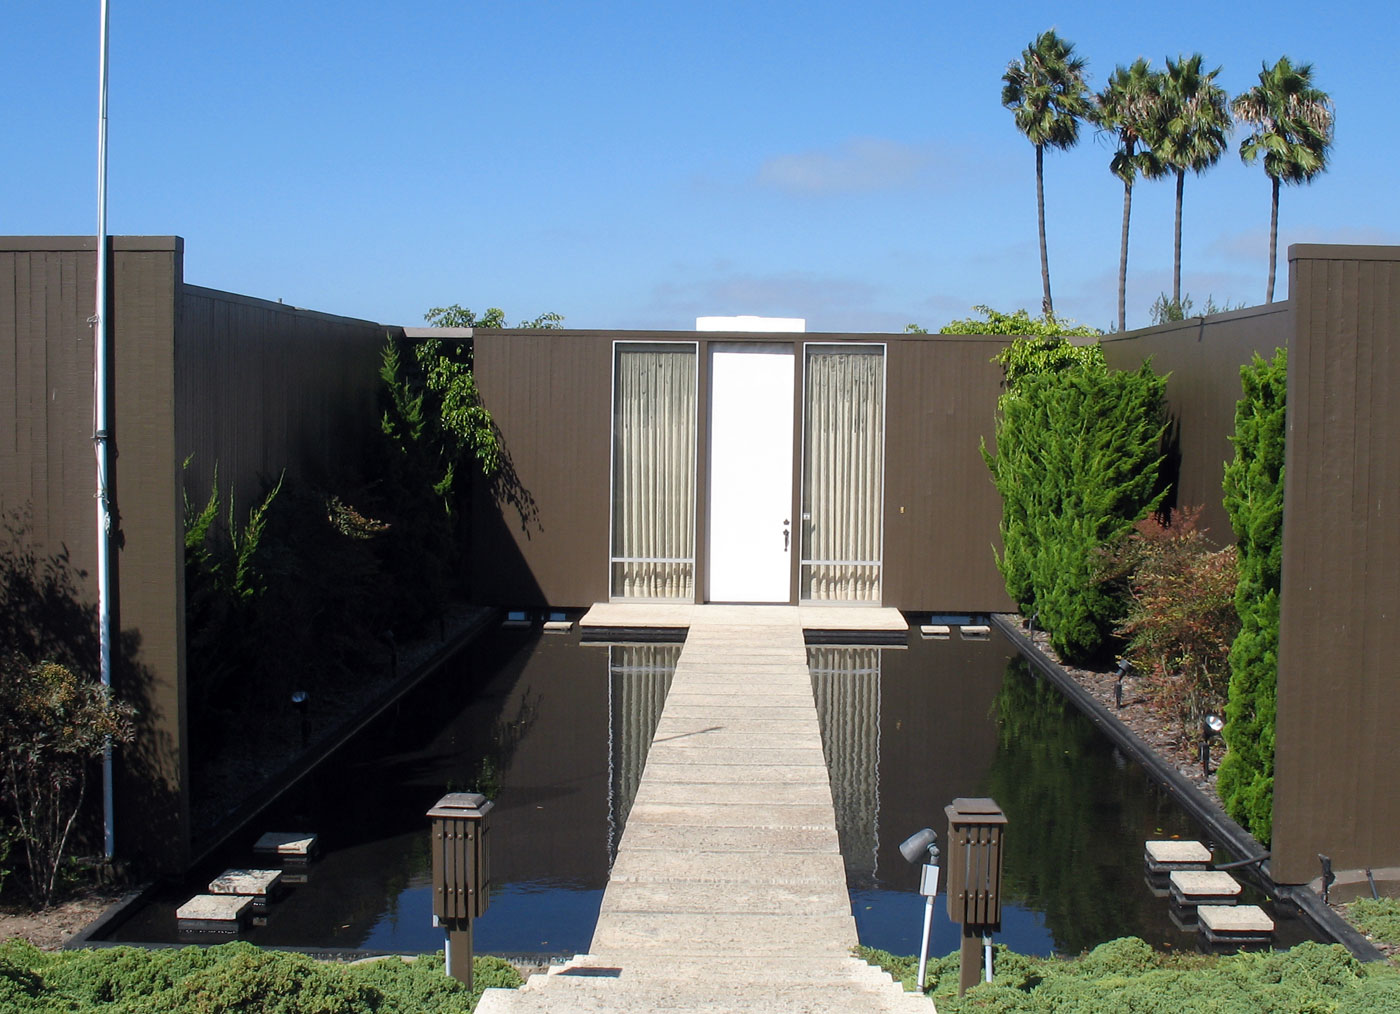 case study house 18 was built by rodney a walker